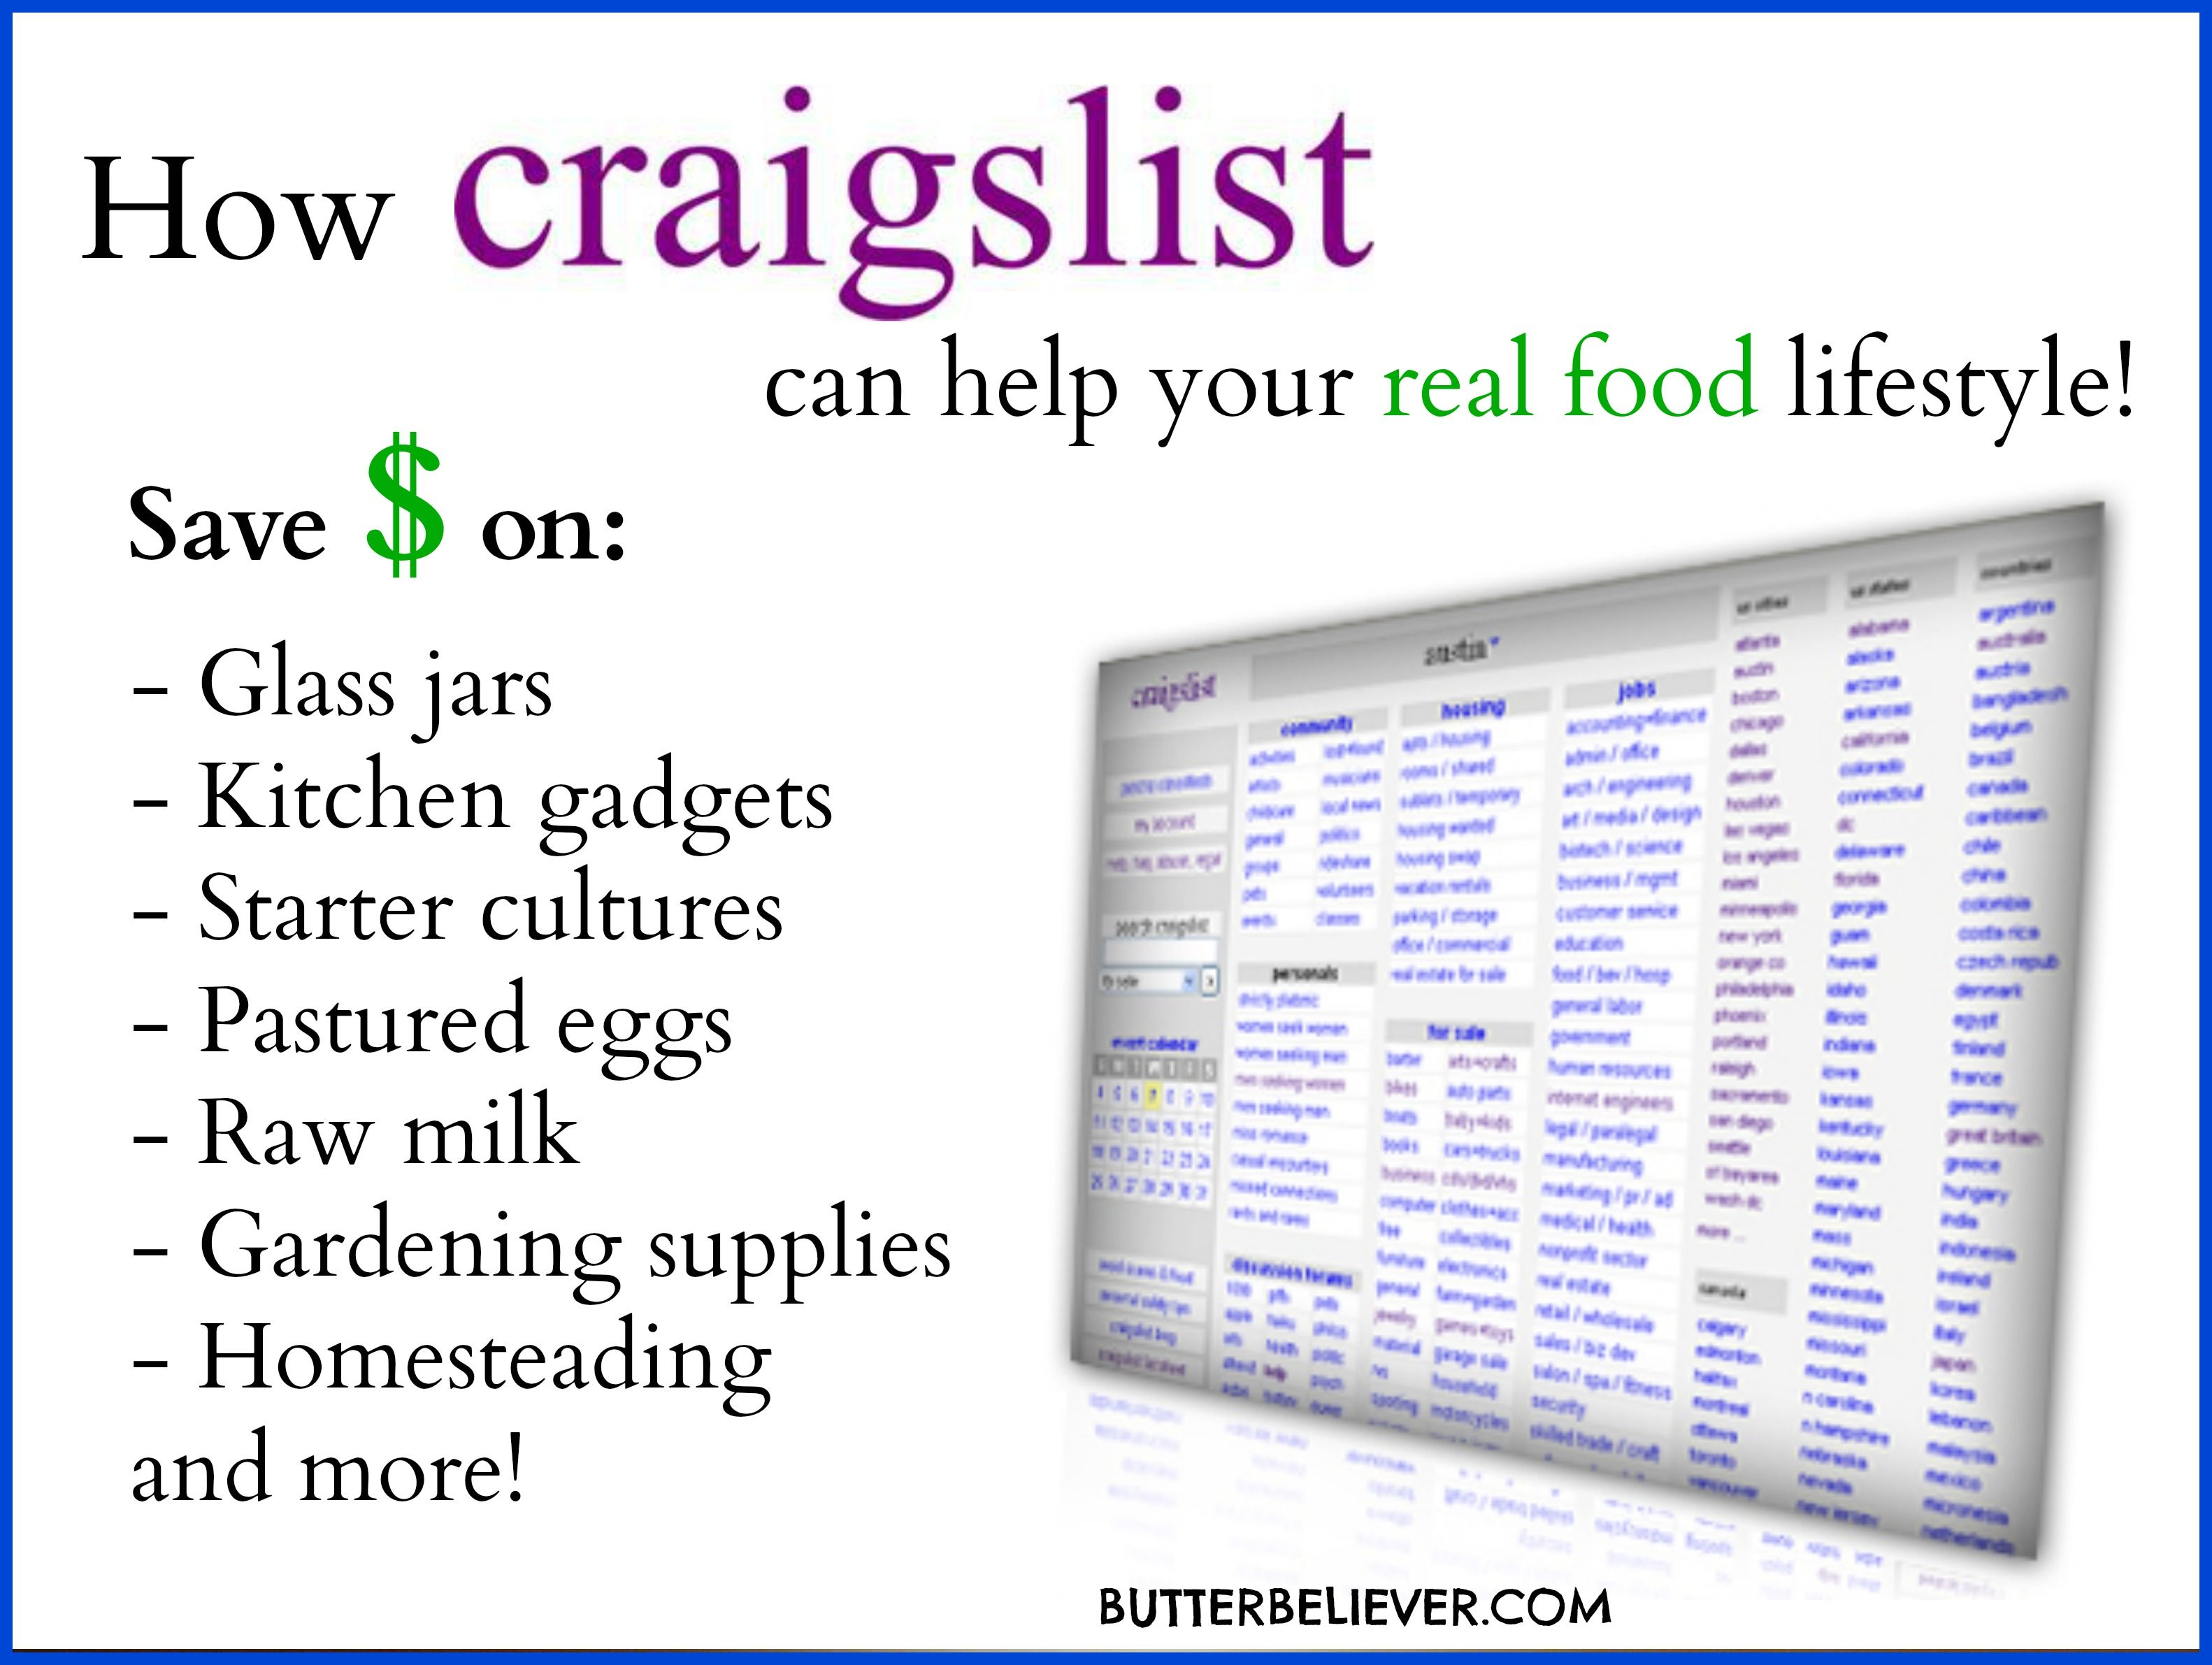 How To Use Craigslist To Find Real Food Stuff And Save Money Real Food Recipes Emergency Prepping Canning